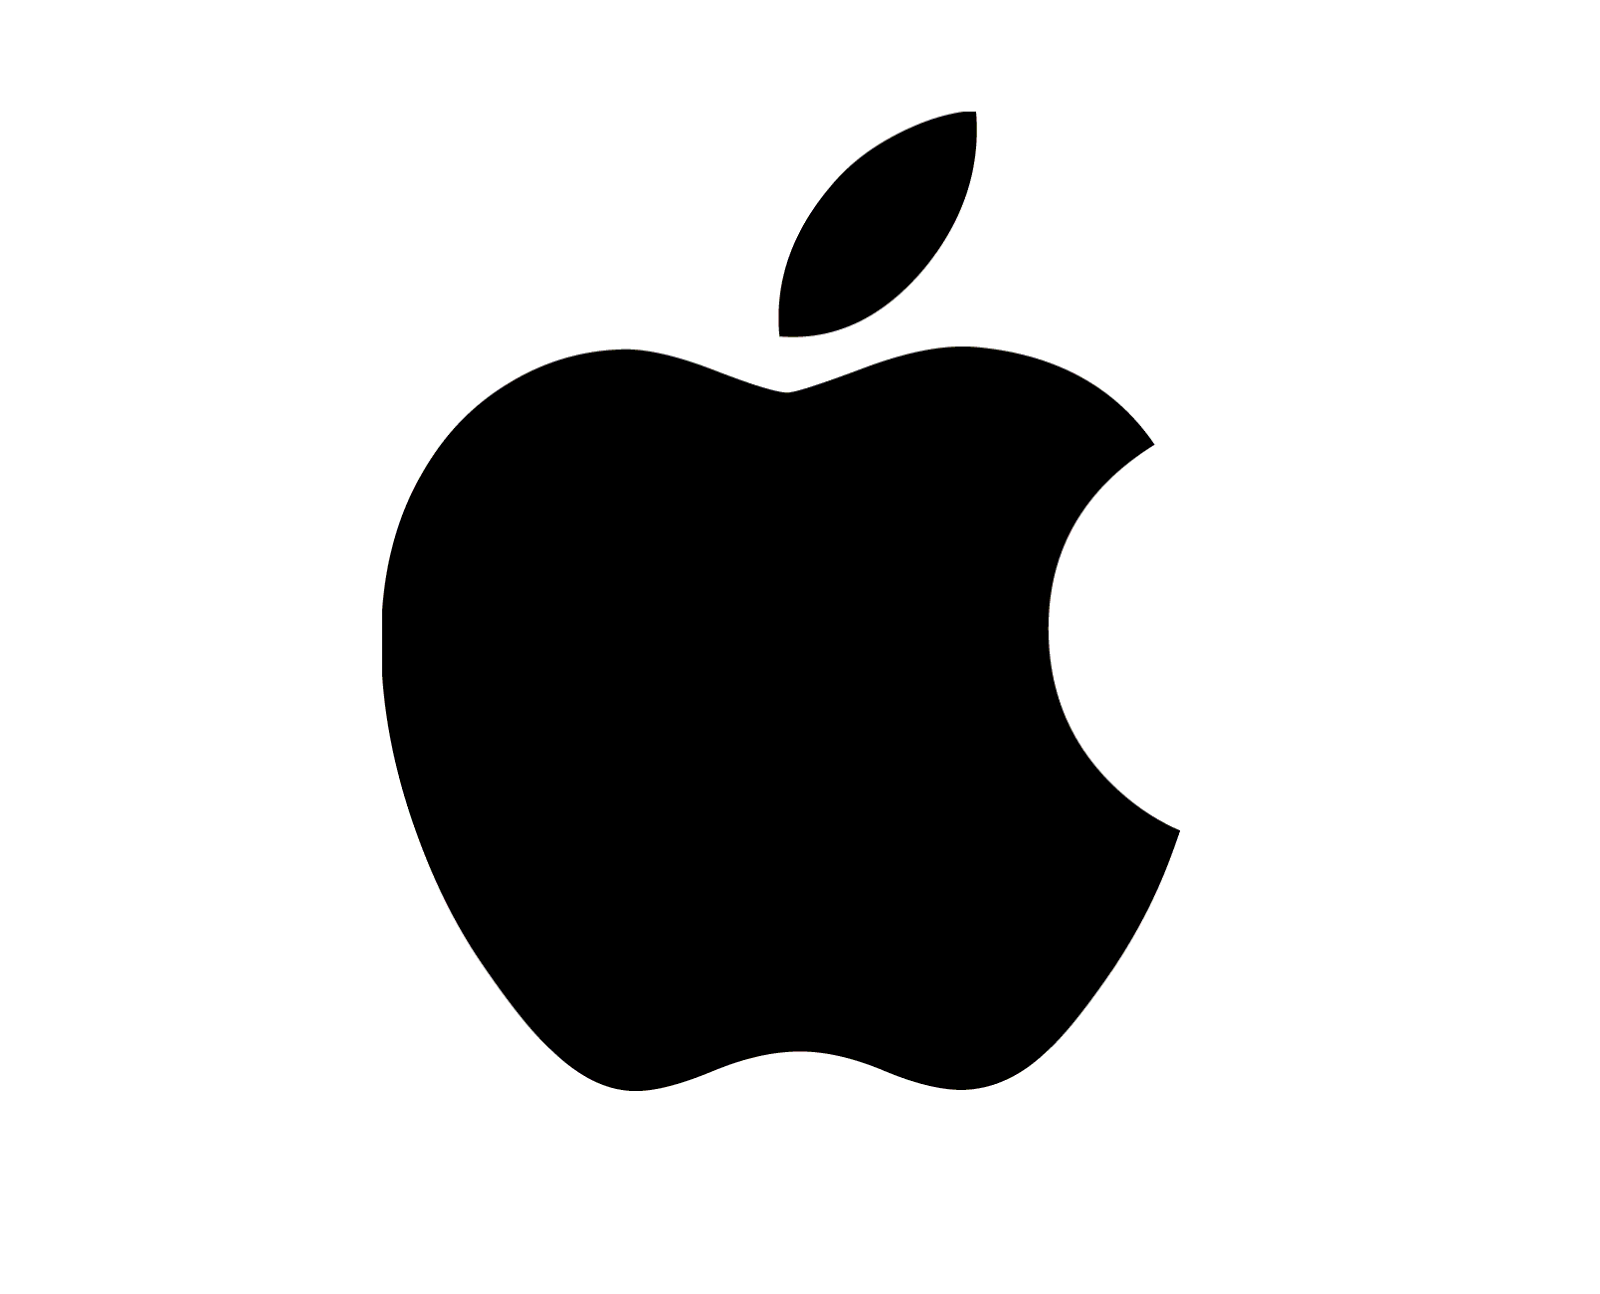 image official apple logo 2013 pictures 5 hd wallpapers png rh respawnables wikia com official apple logo png official apple logo 2018